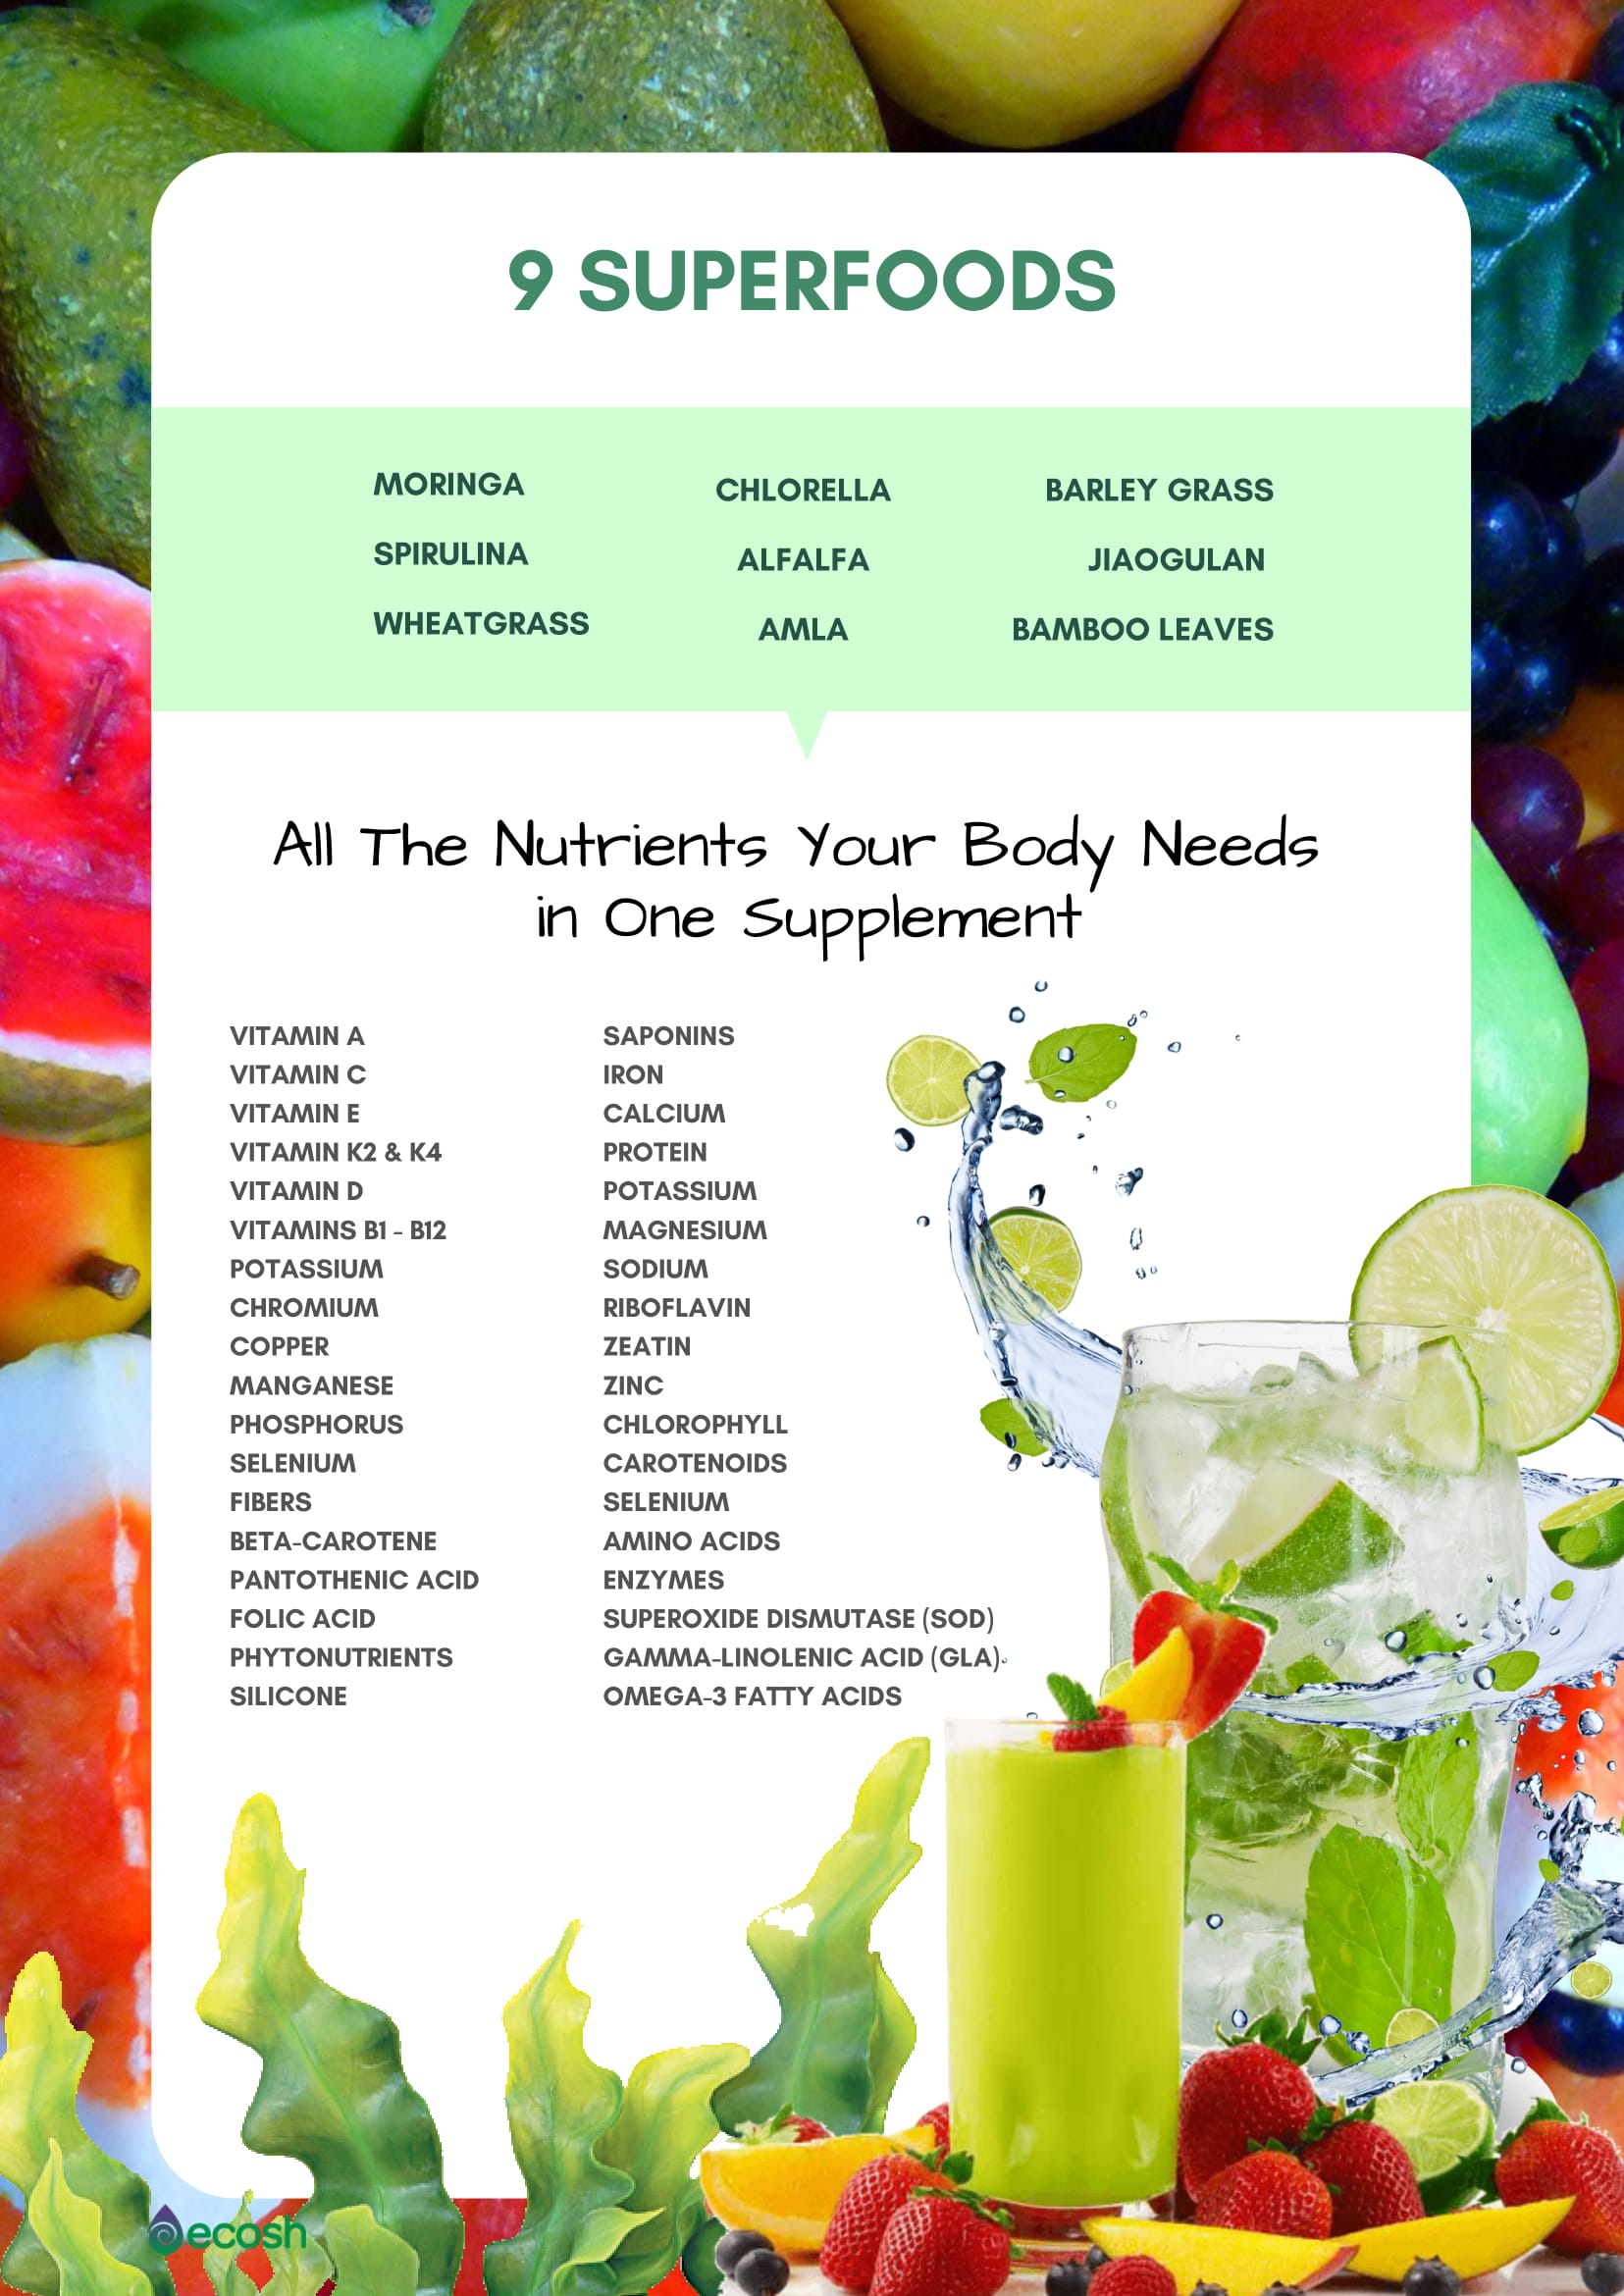 Ecosh_2019-9_Superfoods_contains_all_the_nutrients_your_body_needs